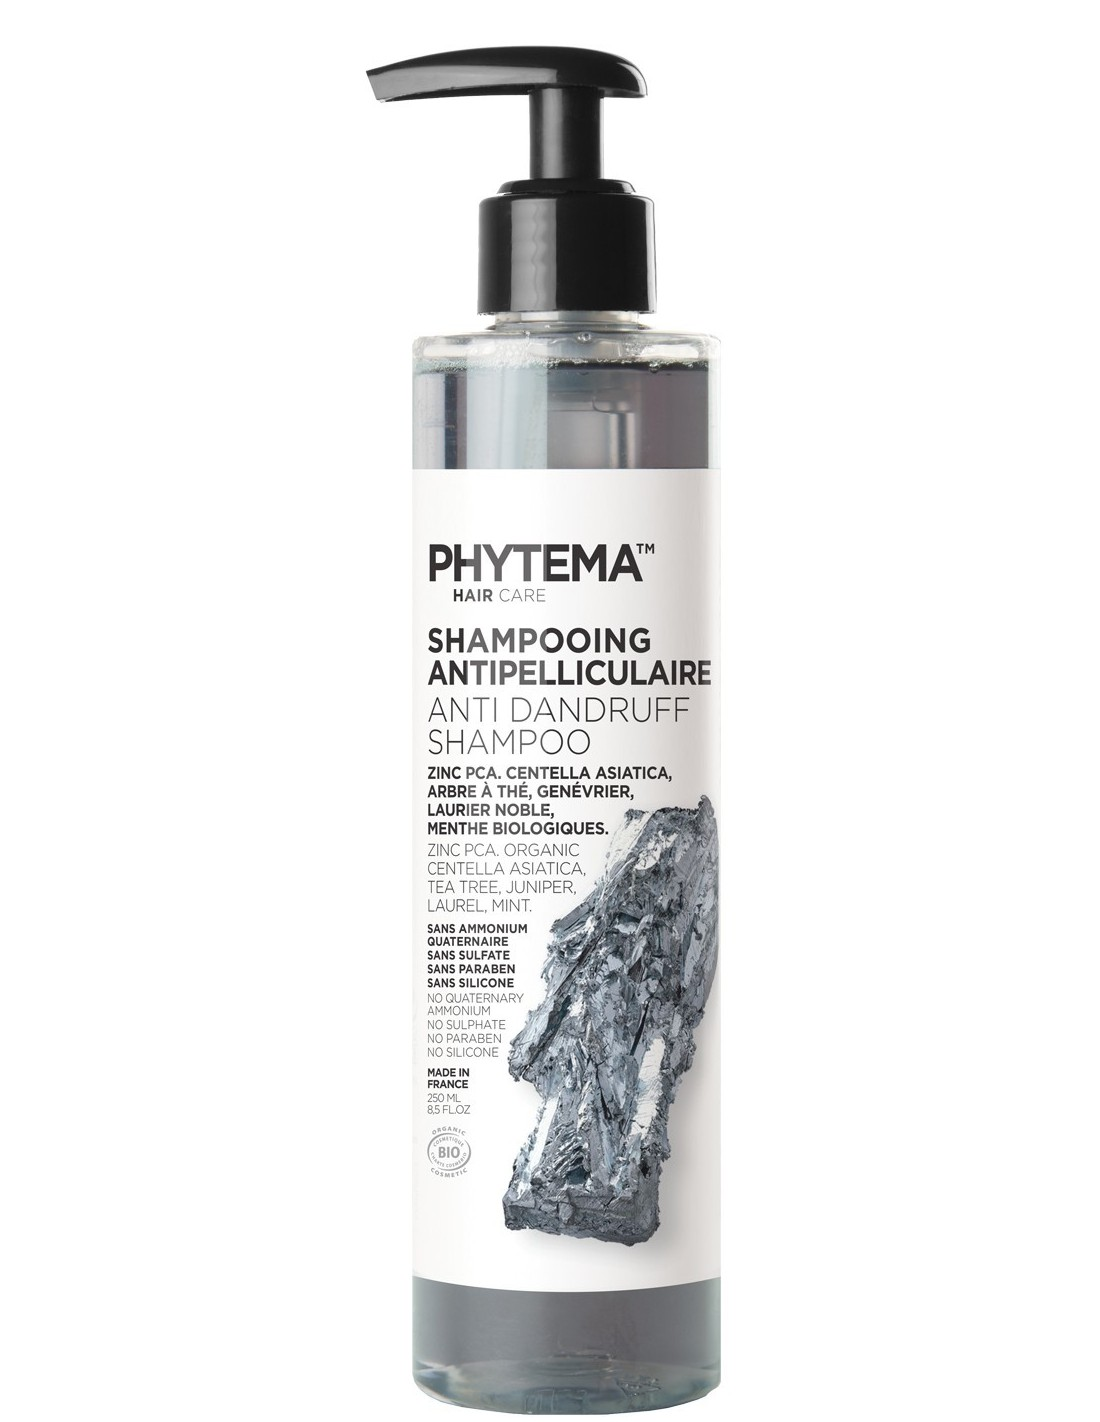 Phytema shampoing Antipelliculaire 250ml 3760054010048